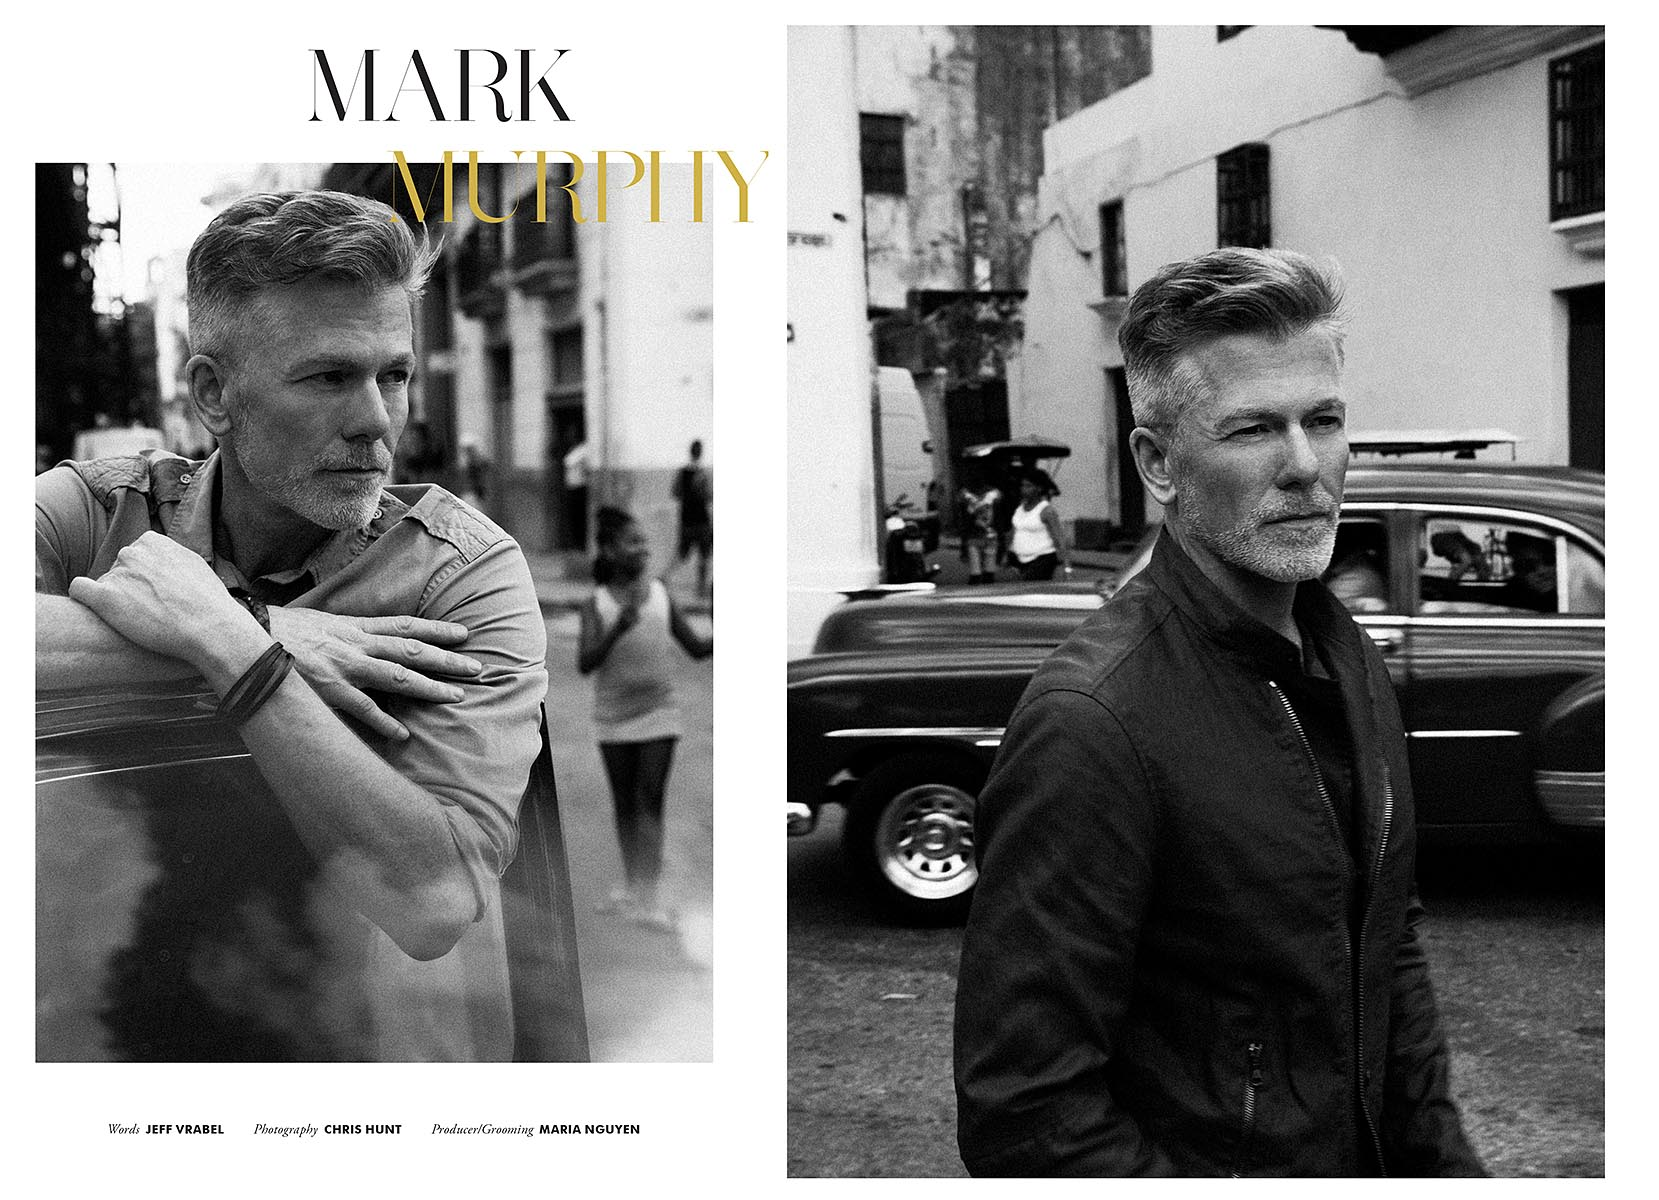 Chris-Hunt-Celebrity-Mark Murphy-double